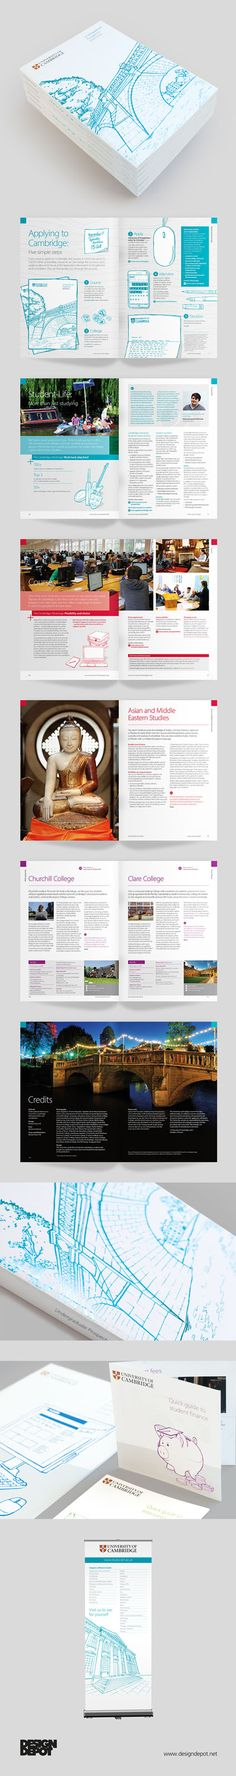 In this project at Design Depot I produced line-work/pen illustrations for Cambridge University. Booklet Layout, Newsletter Layout, Brochure Layout, Newsletter Design, Brochure Design, Branding Design, Web Design, Book Design, Layout Design